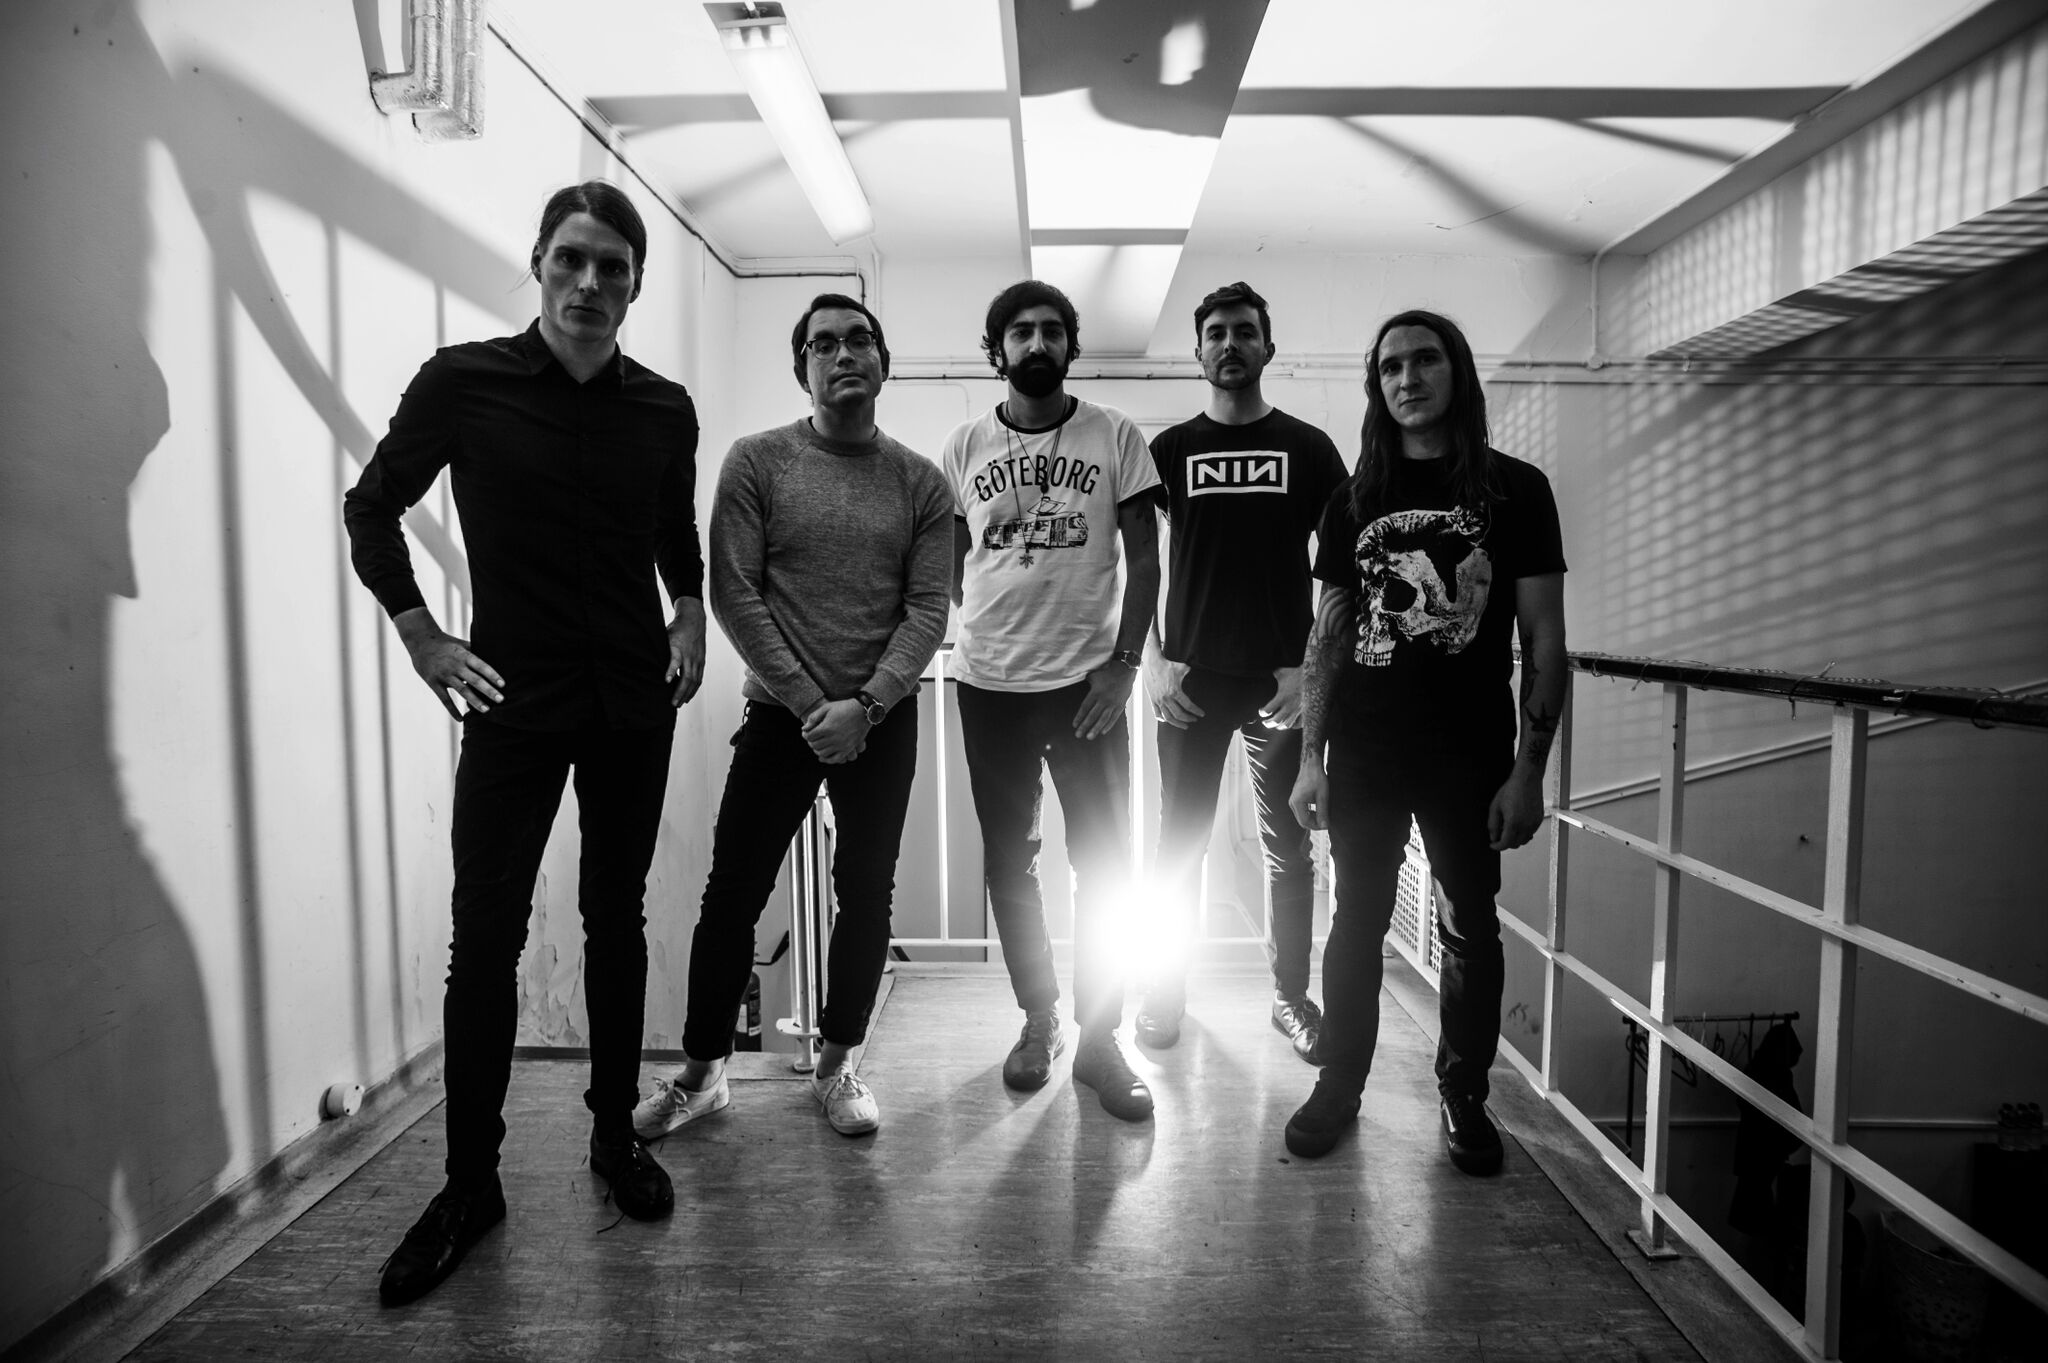 Deafeheaven celebrate 10 years as a band with 2020 tour